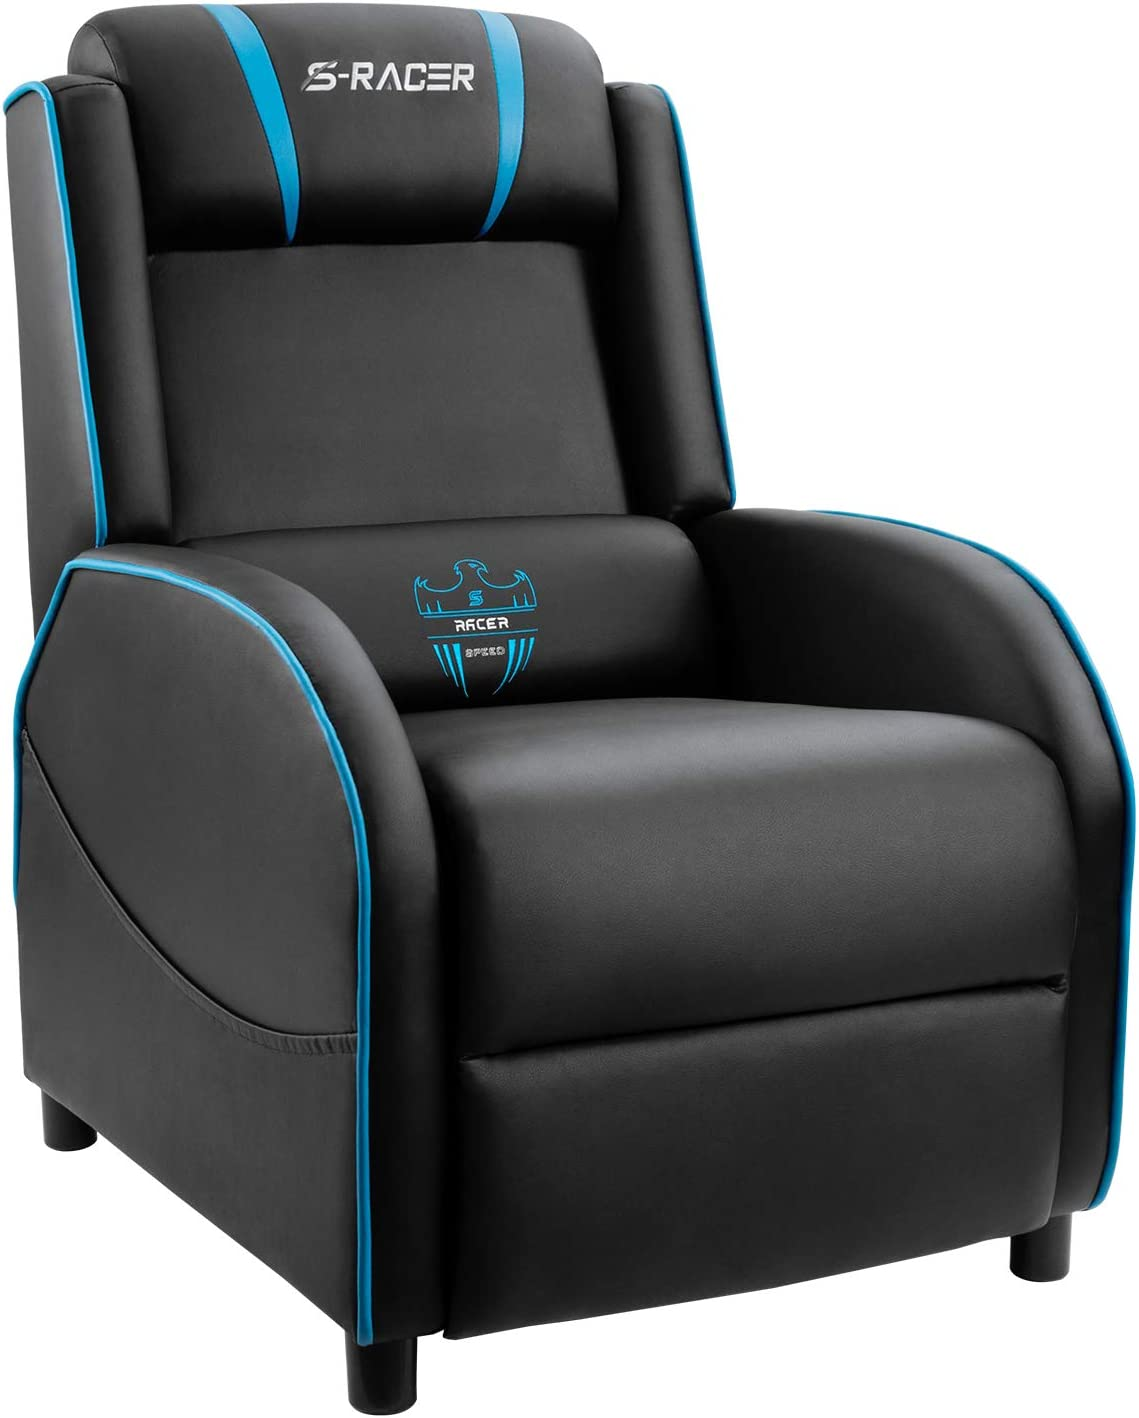 Homall Gaming Recliner Single Sofa Chair